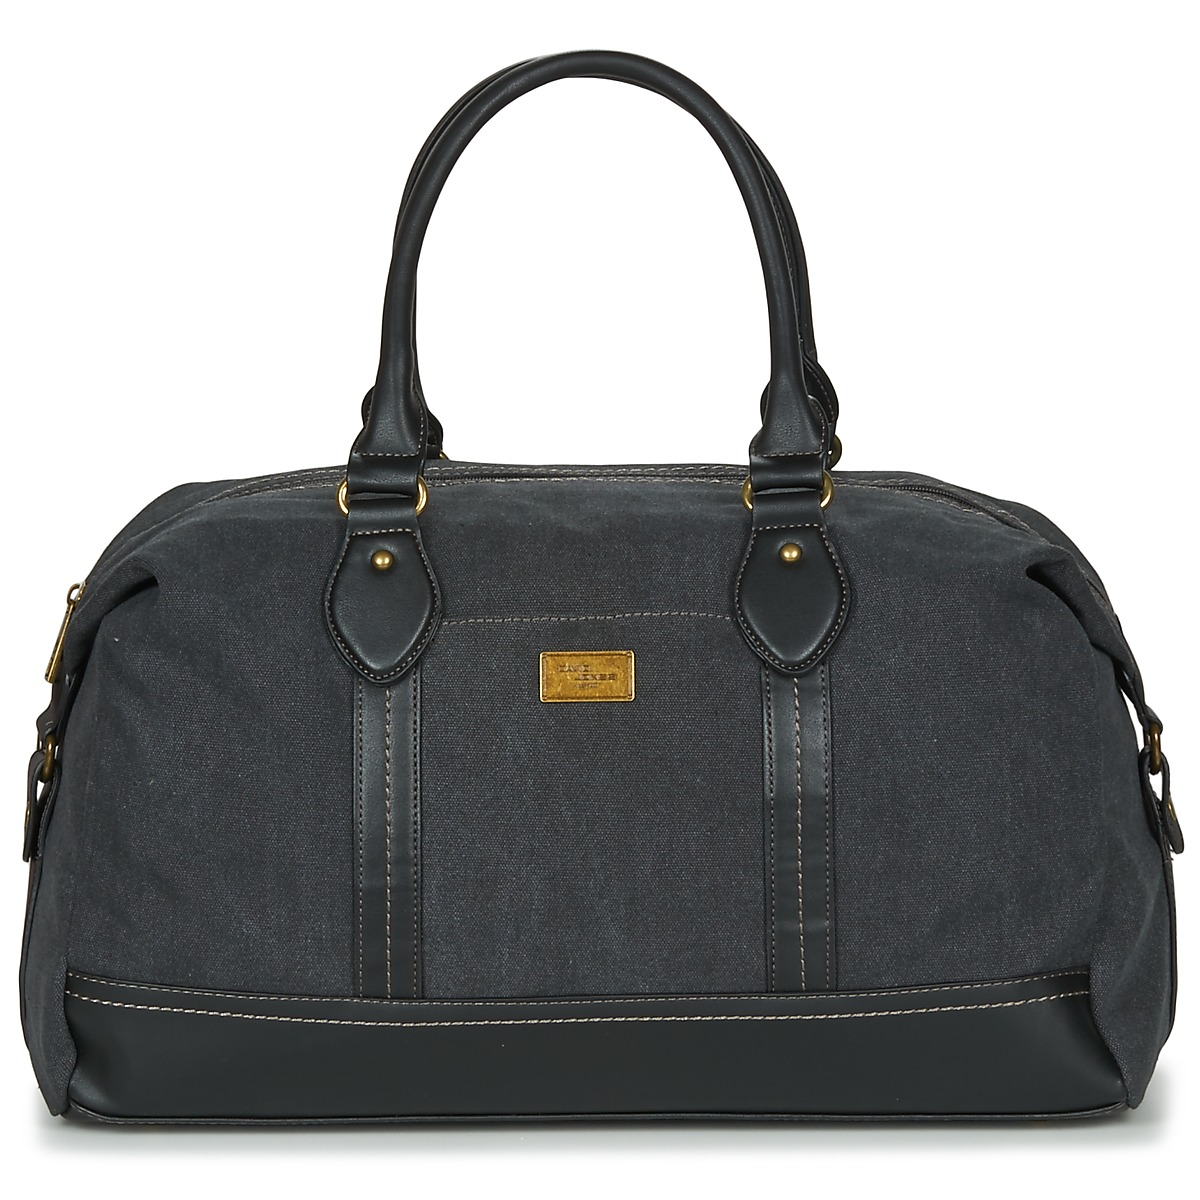 Borsa da viaggio donna David Jones  PRIMULA 32L  Nero David Jones